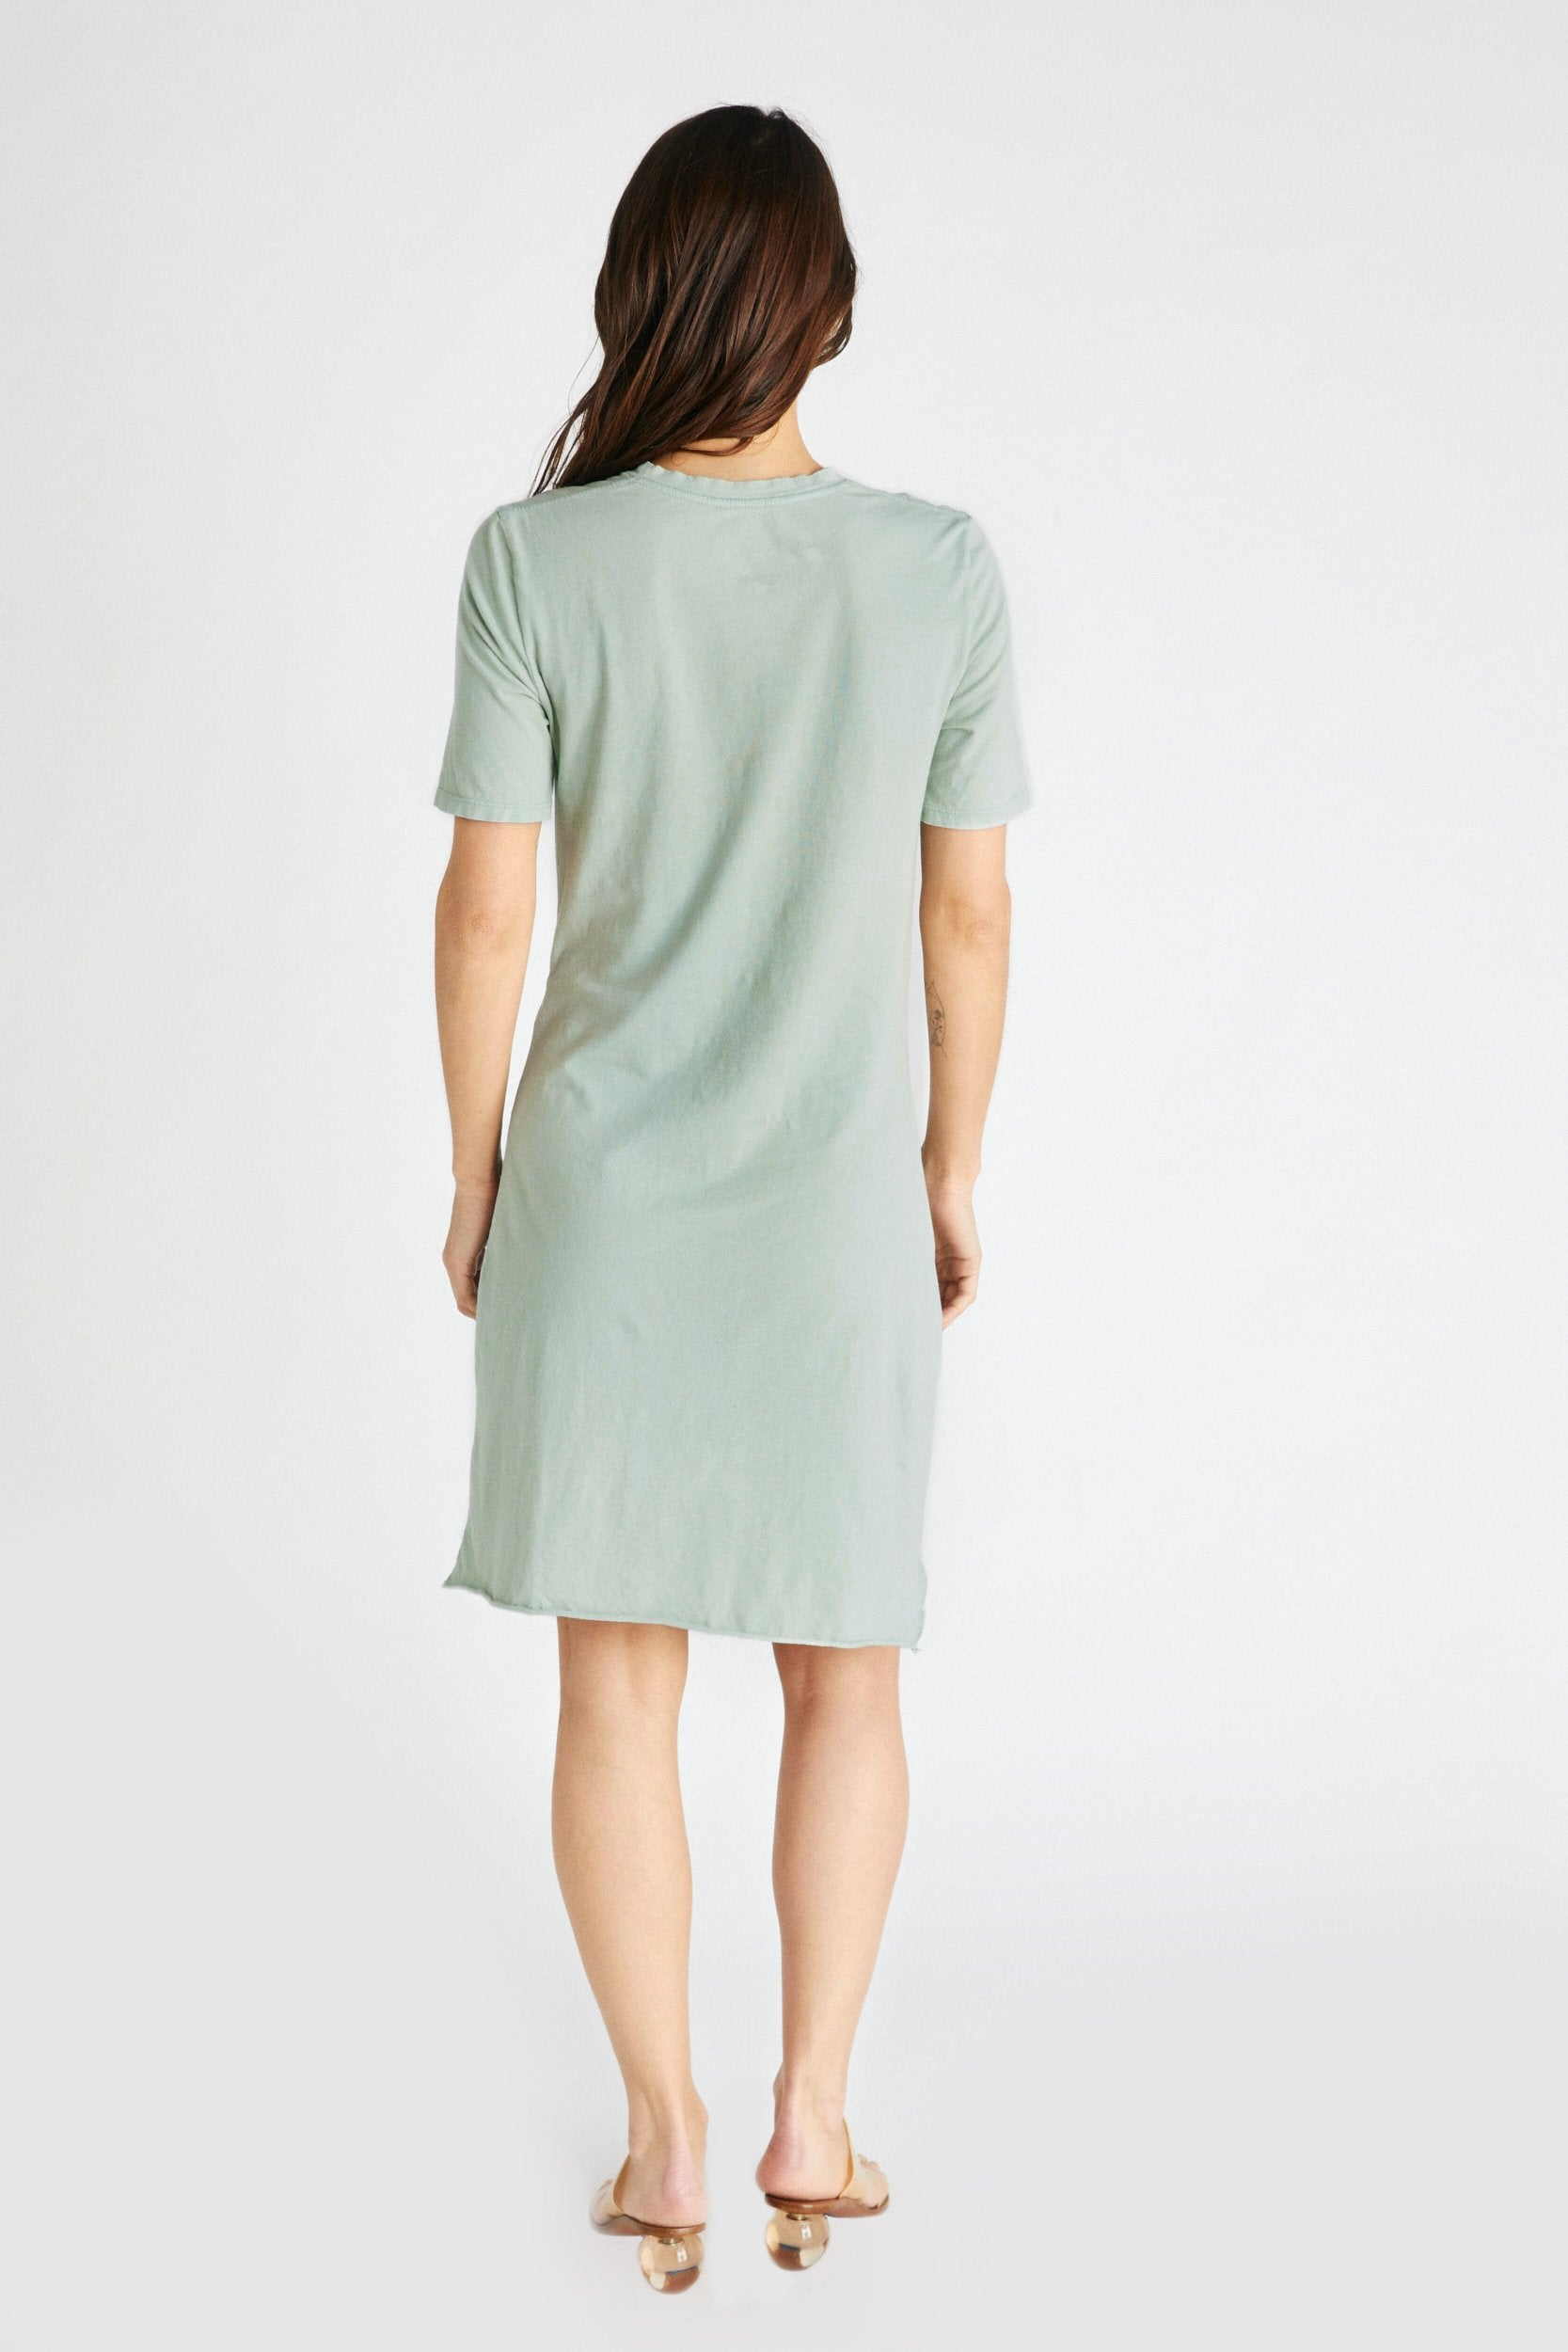 Veronica Twist Tee Dress - Agave